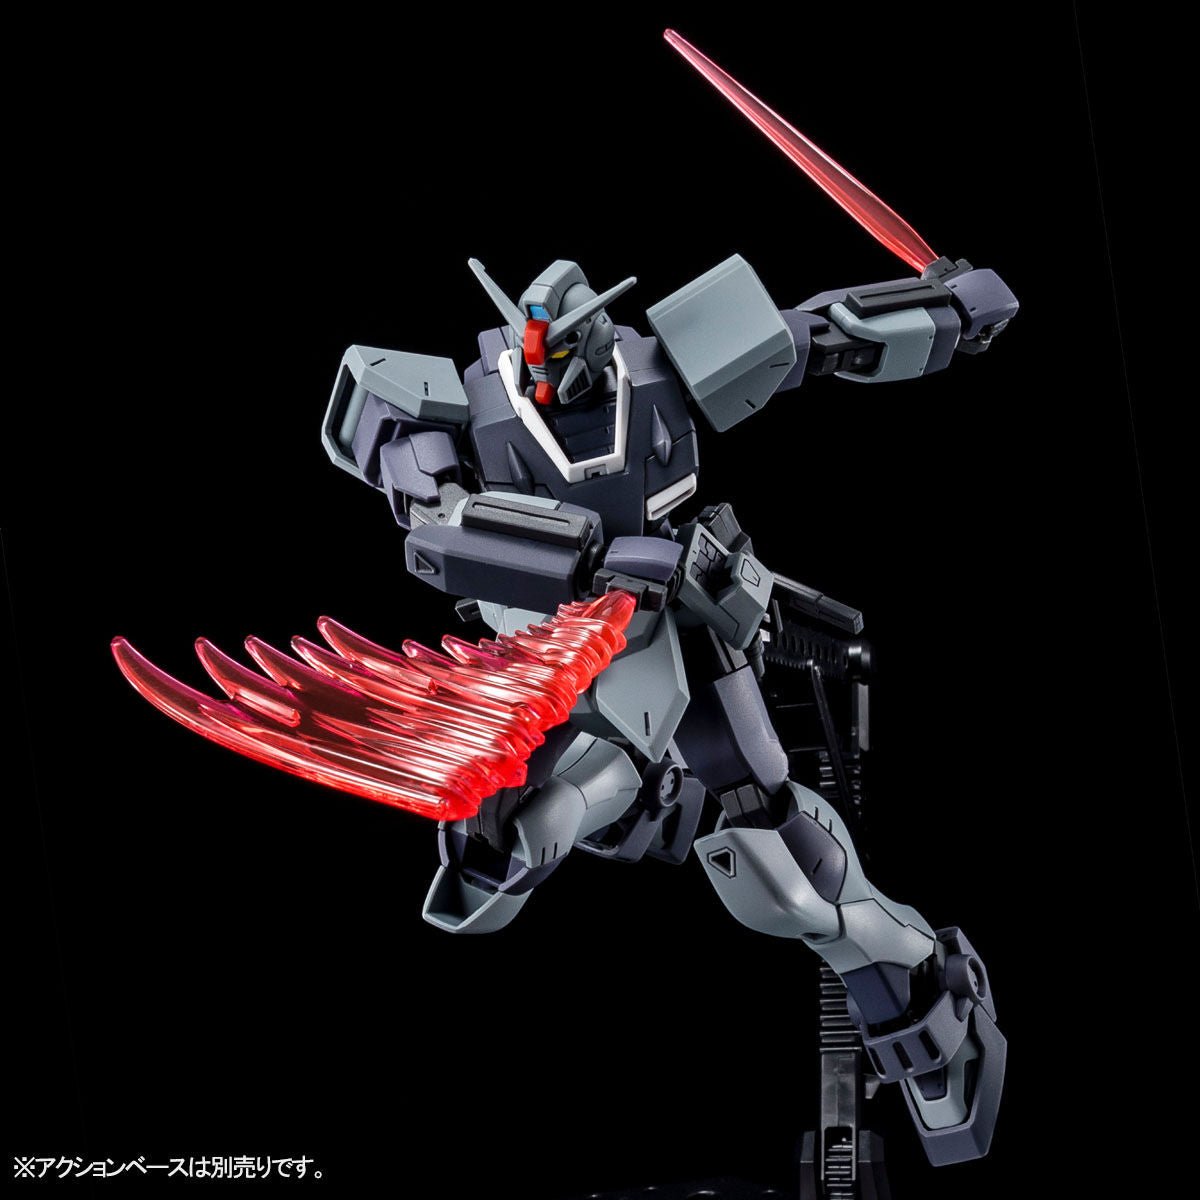 P-BANDAI: HGUC 1/144 GUNDAM PIXY FRED REAVER USE [End of April 2020]